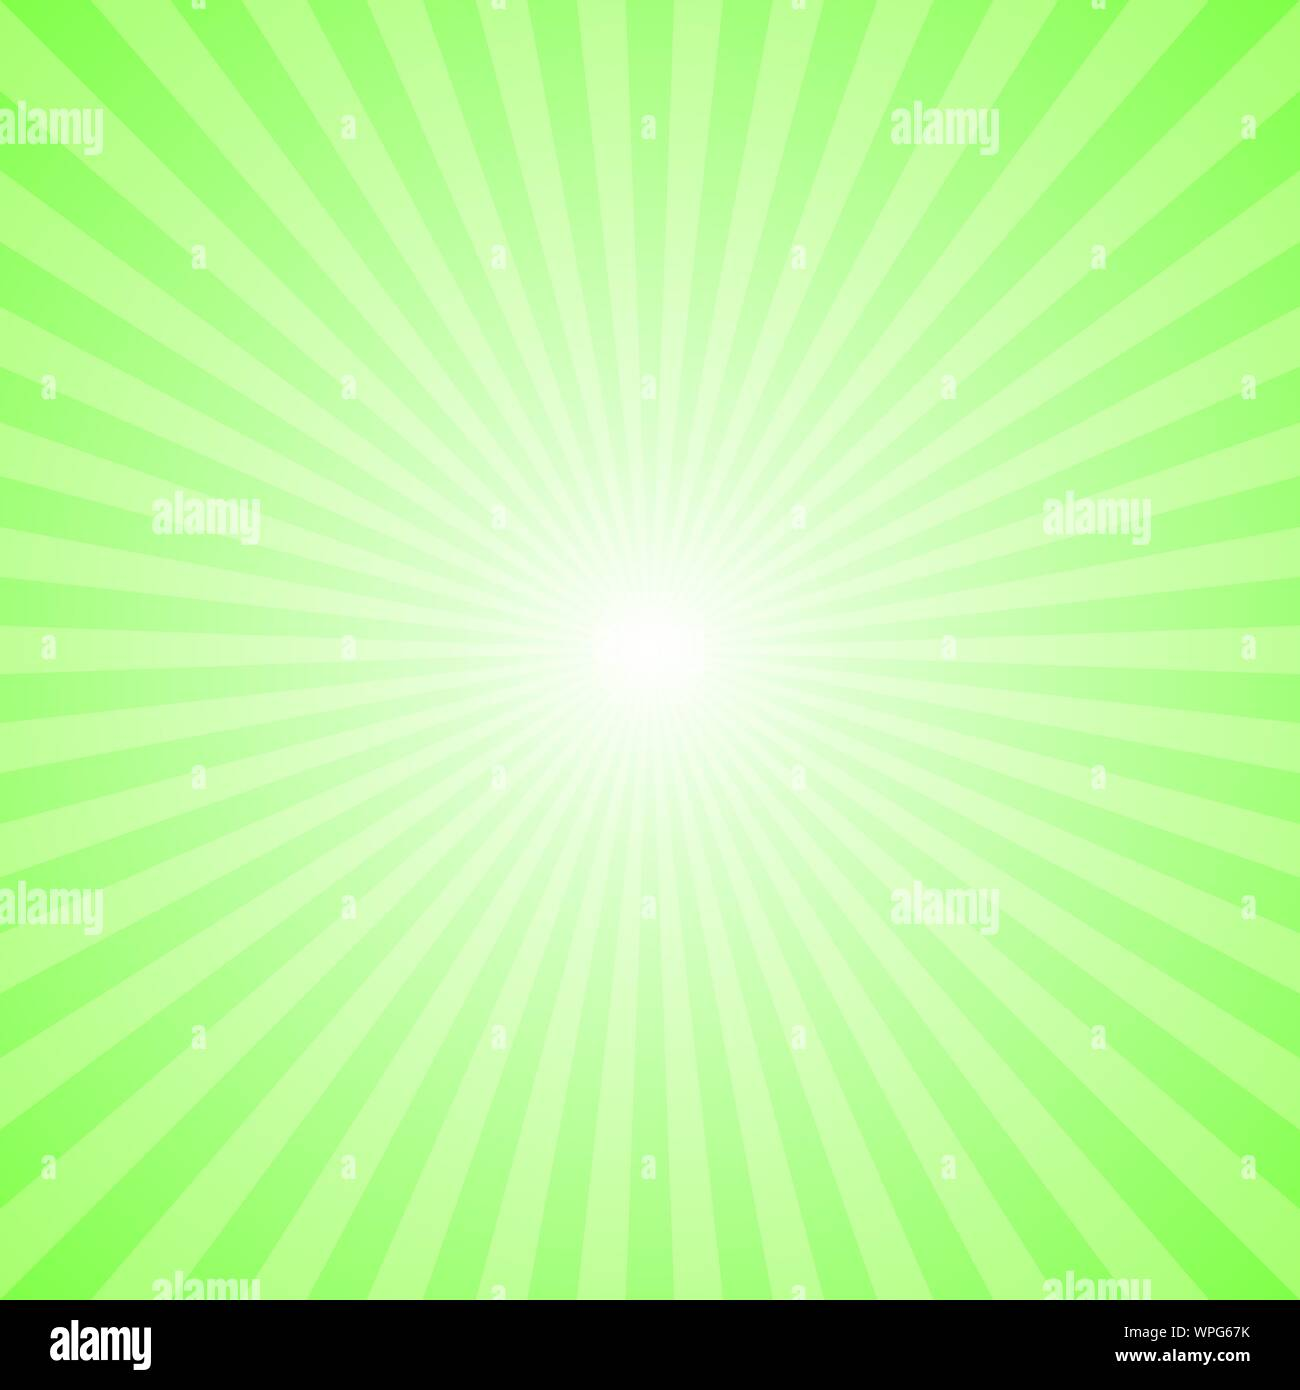 Light Green Abstract Dynamic Starburst Background Gradient